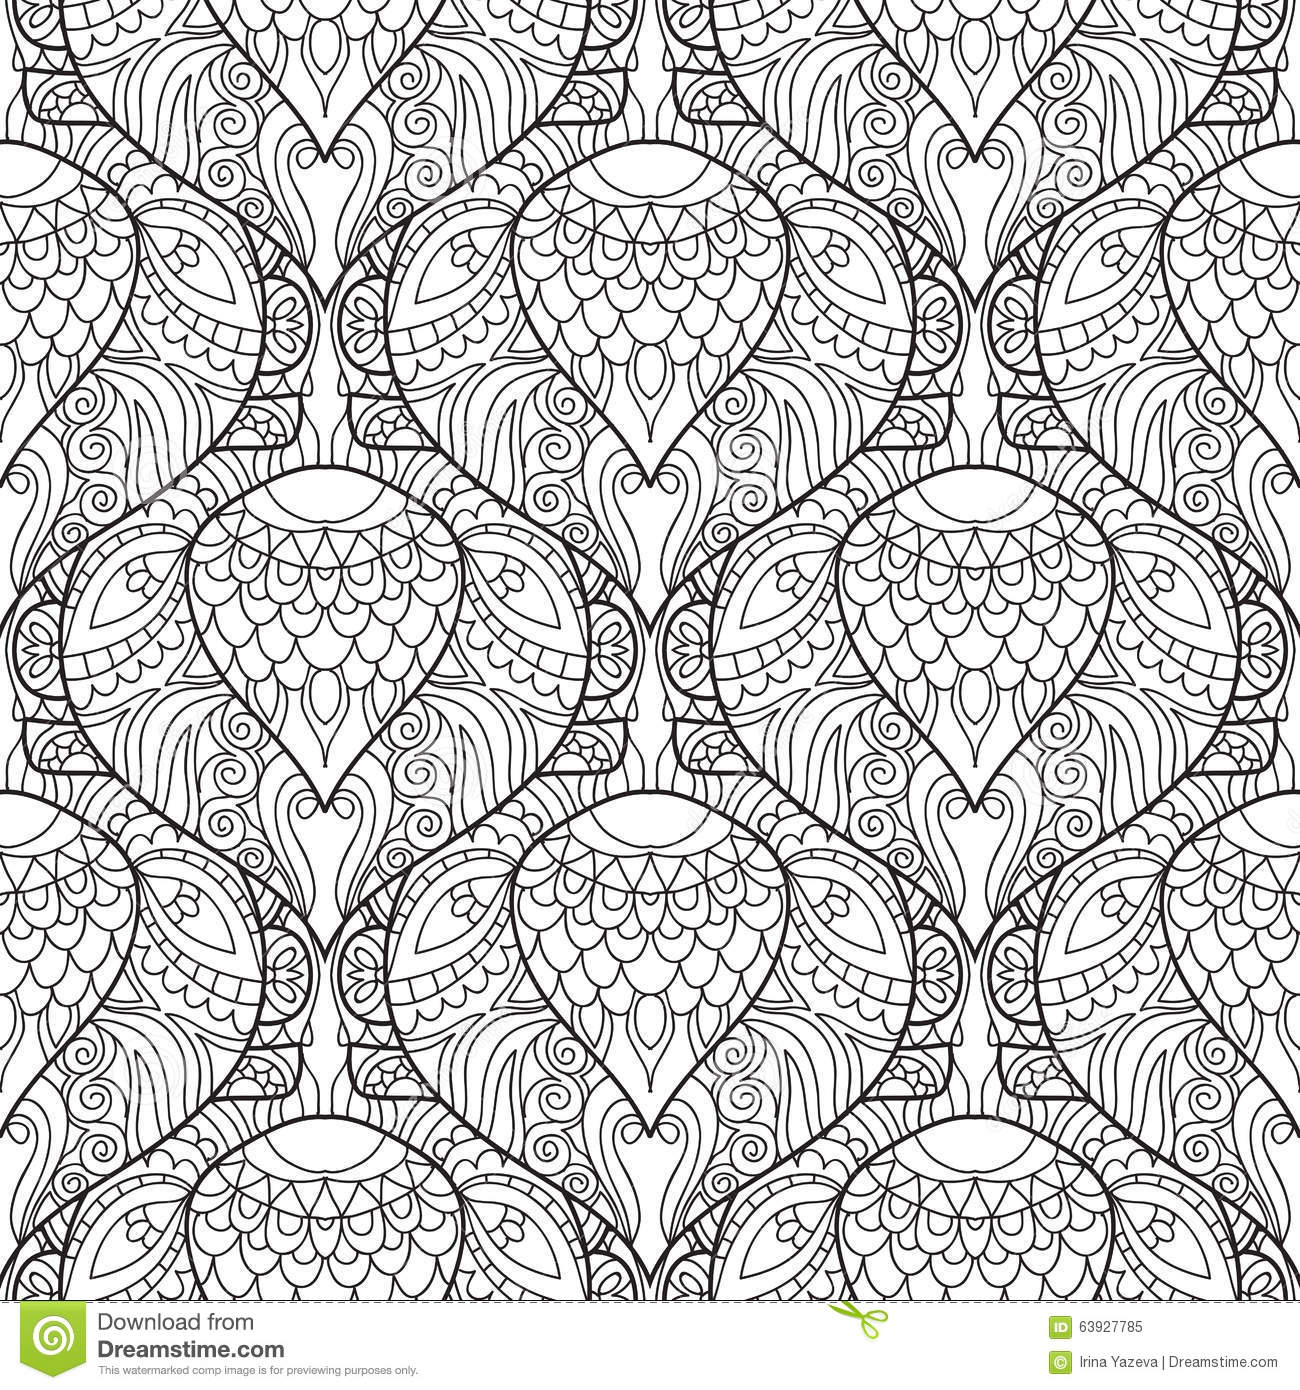 Zentangle Stylized Peacock Feather Pattern Stock Vector